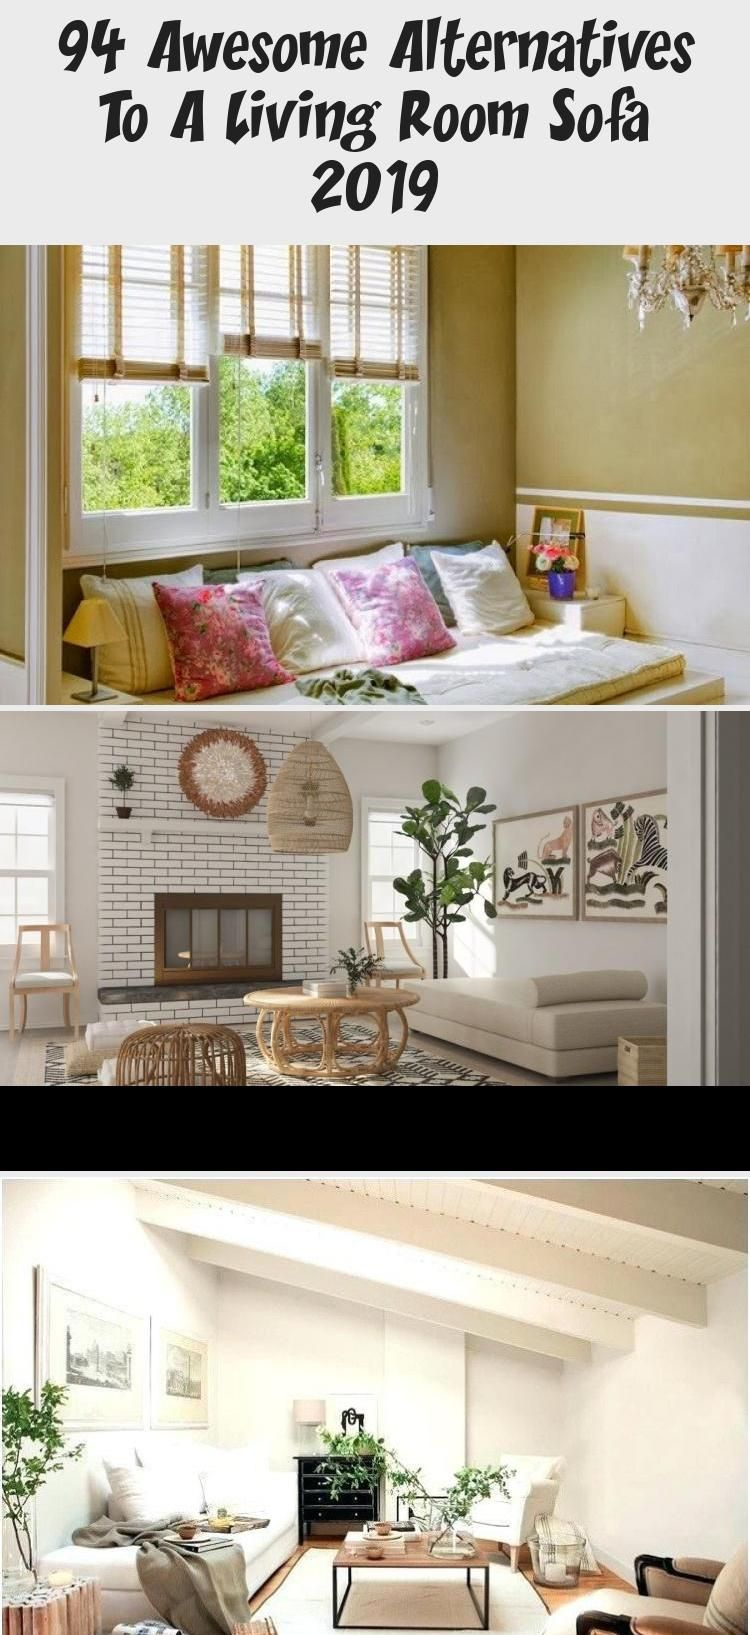 Drawing Room Sofa Designs India: 94 Awesome Alternatives To A Living Room Sofa 2019